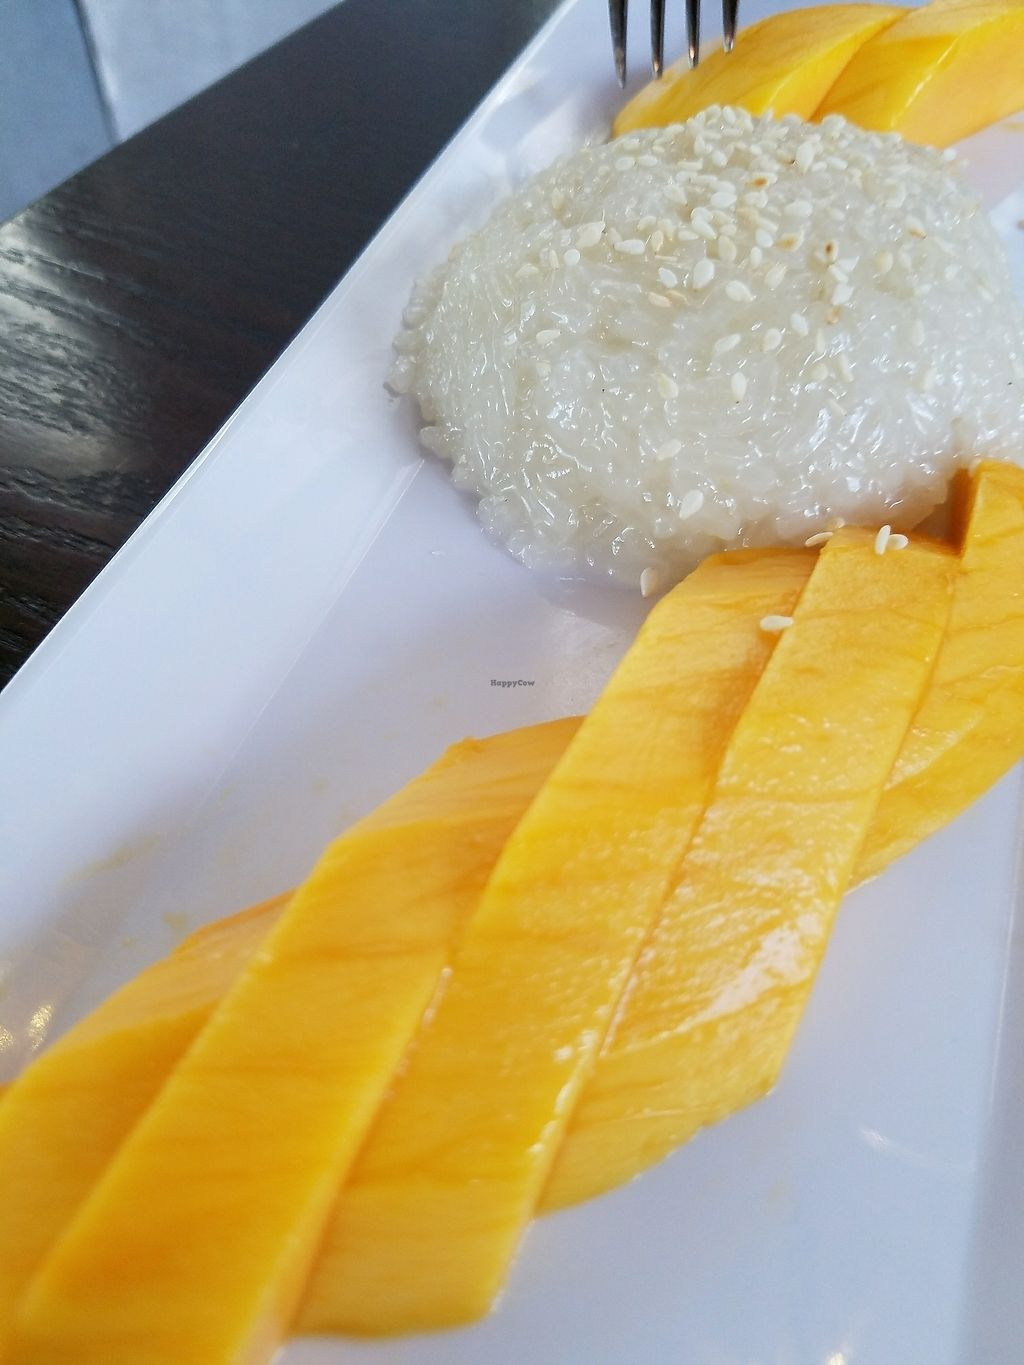 """Photo of Bodhi Thai Kitchen  by <a href=""""/members/profile/andreathinks"""">andreathinks</a> <br/>Mango Sticky Rice <br/> July 20, 2017  - <a href='/contact/abuse/image/21990/282324'>Report</a>"""